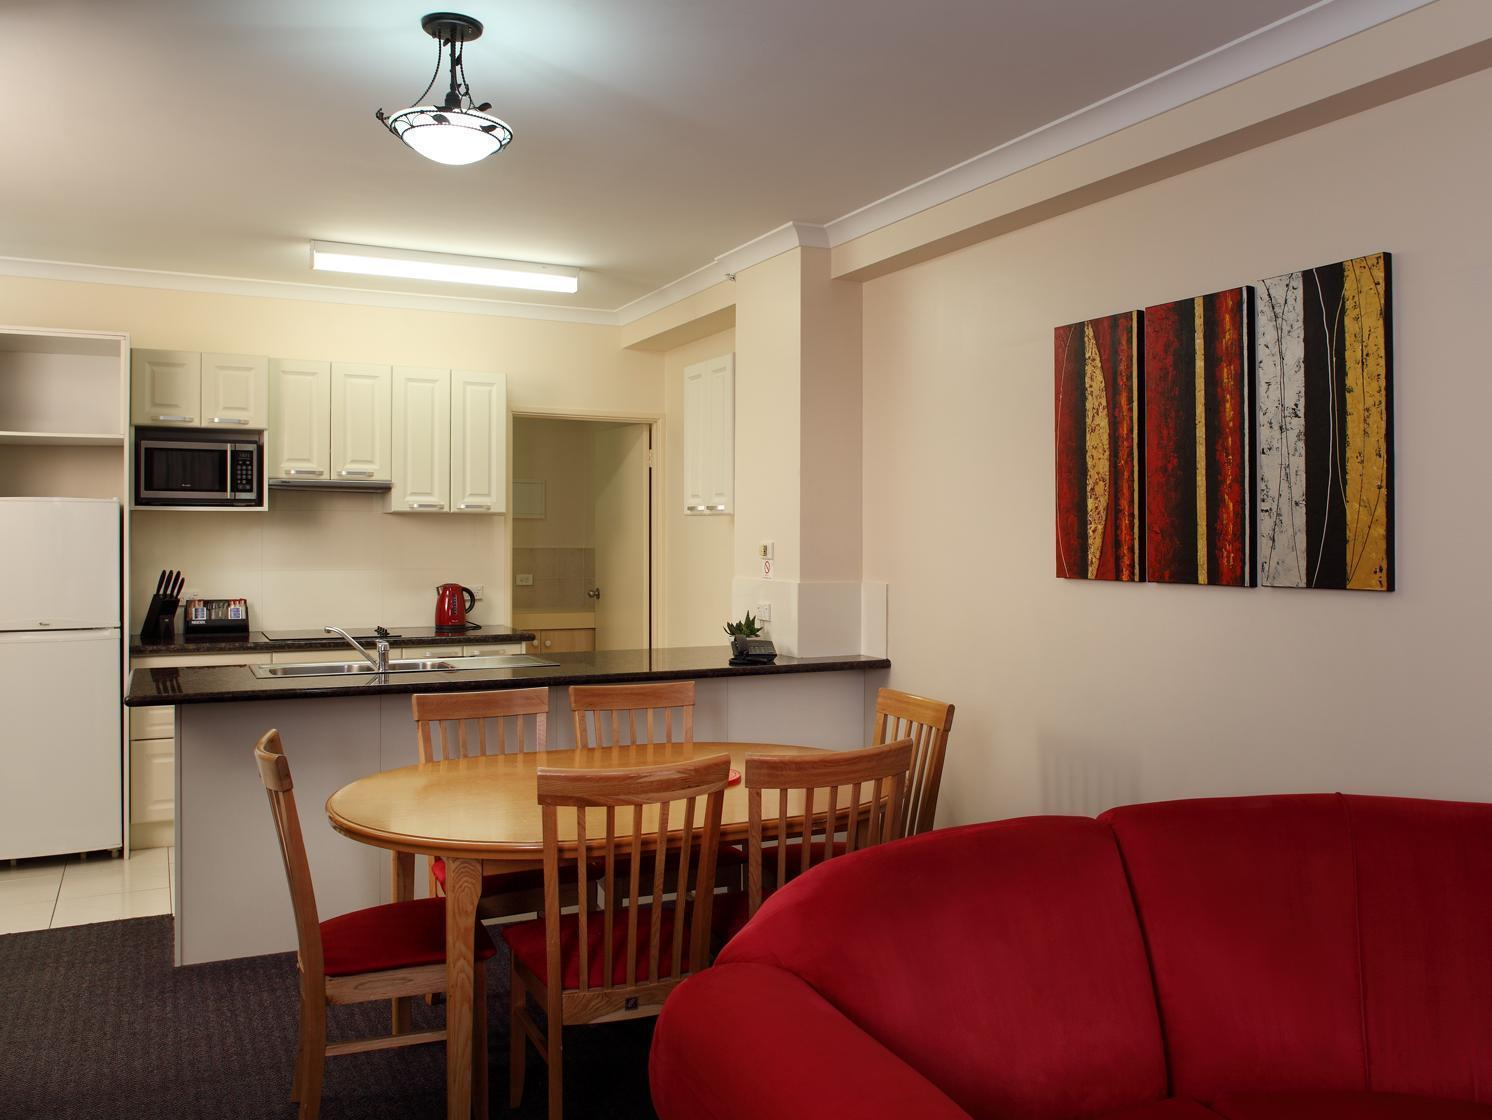 Best Price On Starwest Apartments Alderney On Hay In Perth Reviews